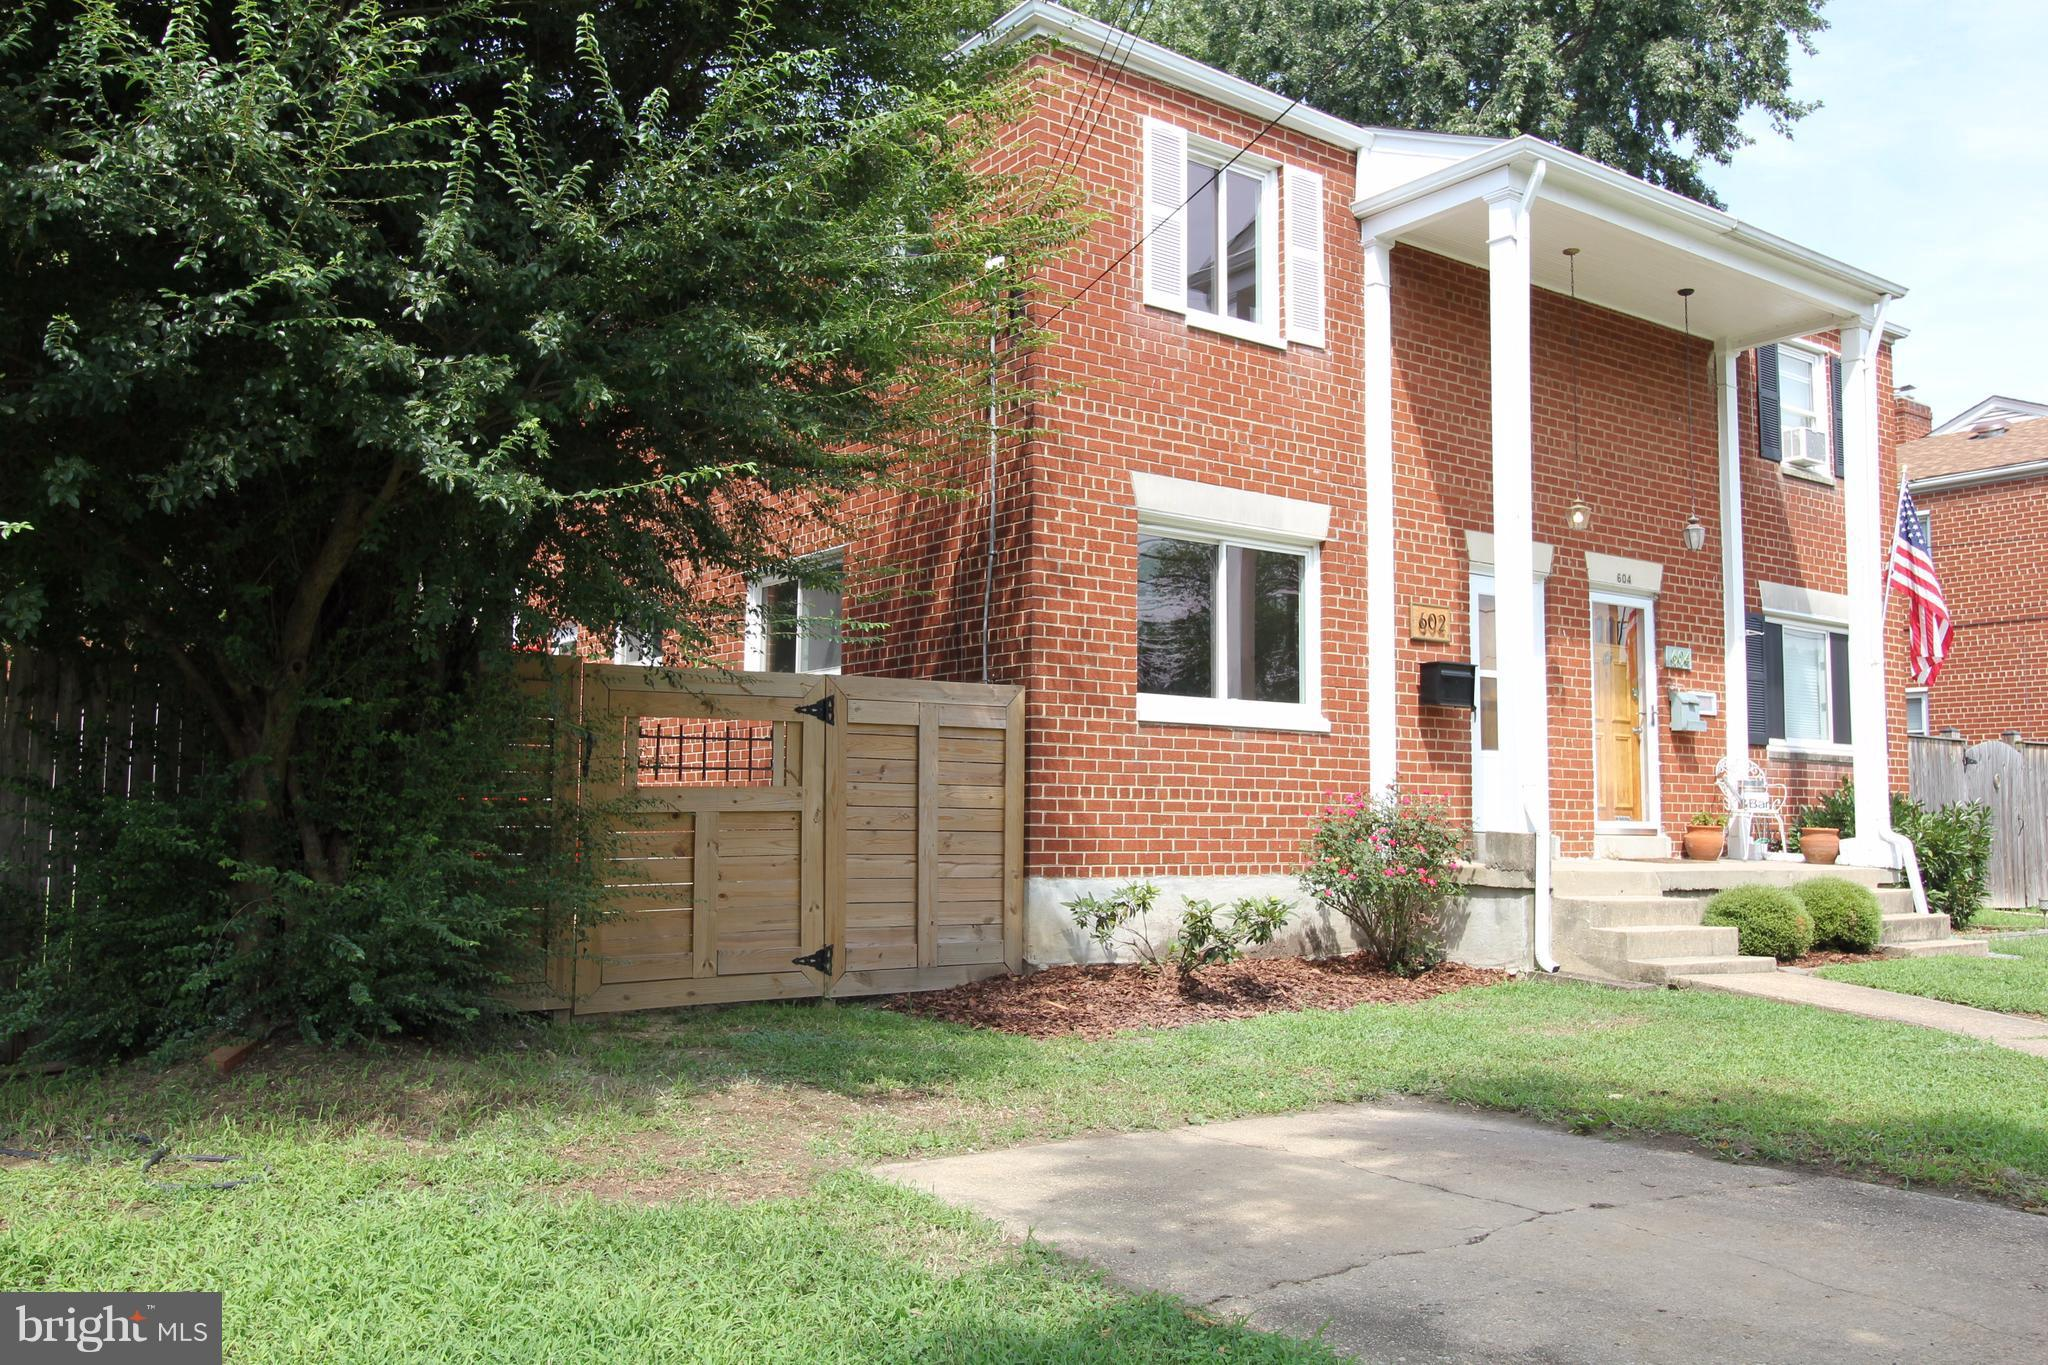 All brick duplex with fenced yard many upgrades Quiet neighborhood off Van Dorn Street. Hardwood floors on main level and all 3 bedrooms upstairs. Newly renovated eat-in kitchen with custom cabinets, granite counters and vintage farm sink. Renovated full bath, new roof & gutters, oak Fr Dr, New HVAC system, off-street parking. All contact should be through Owner Only.